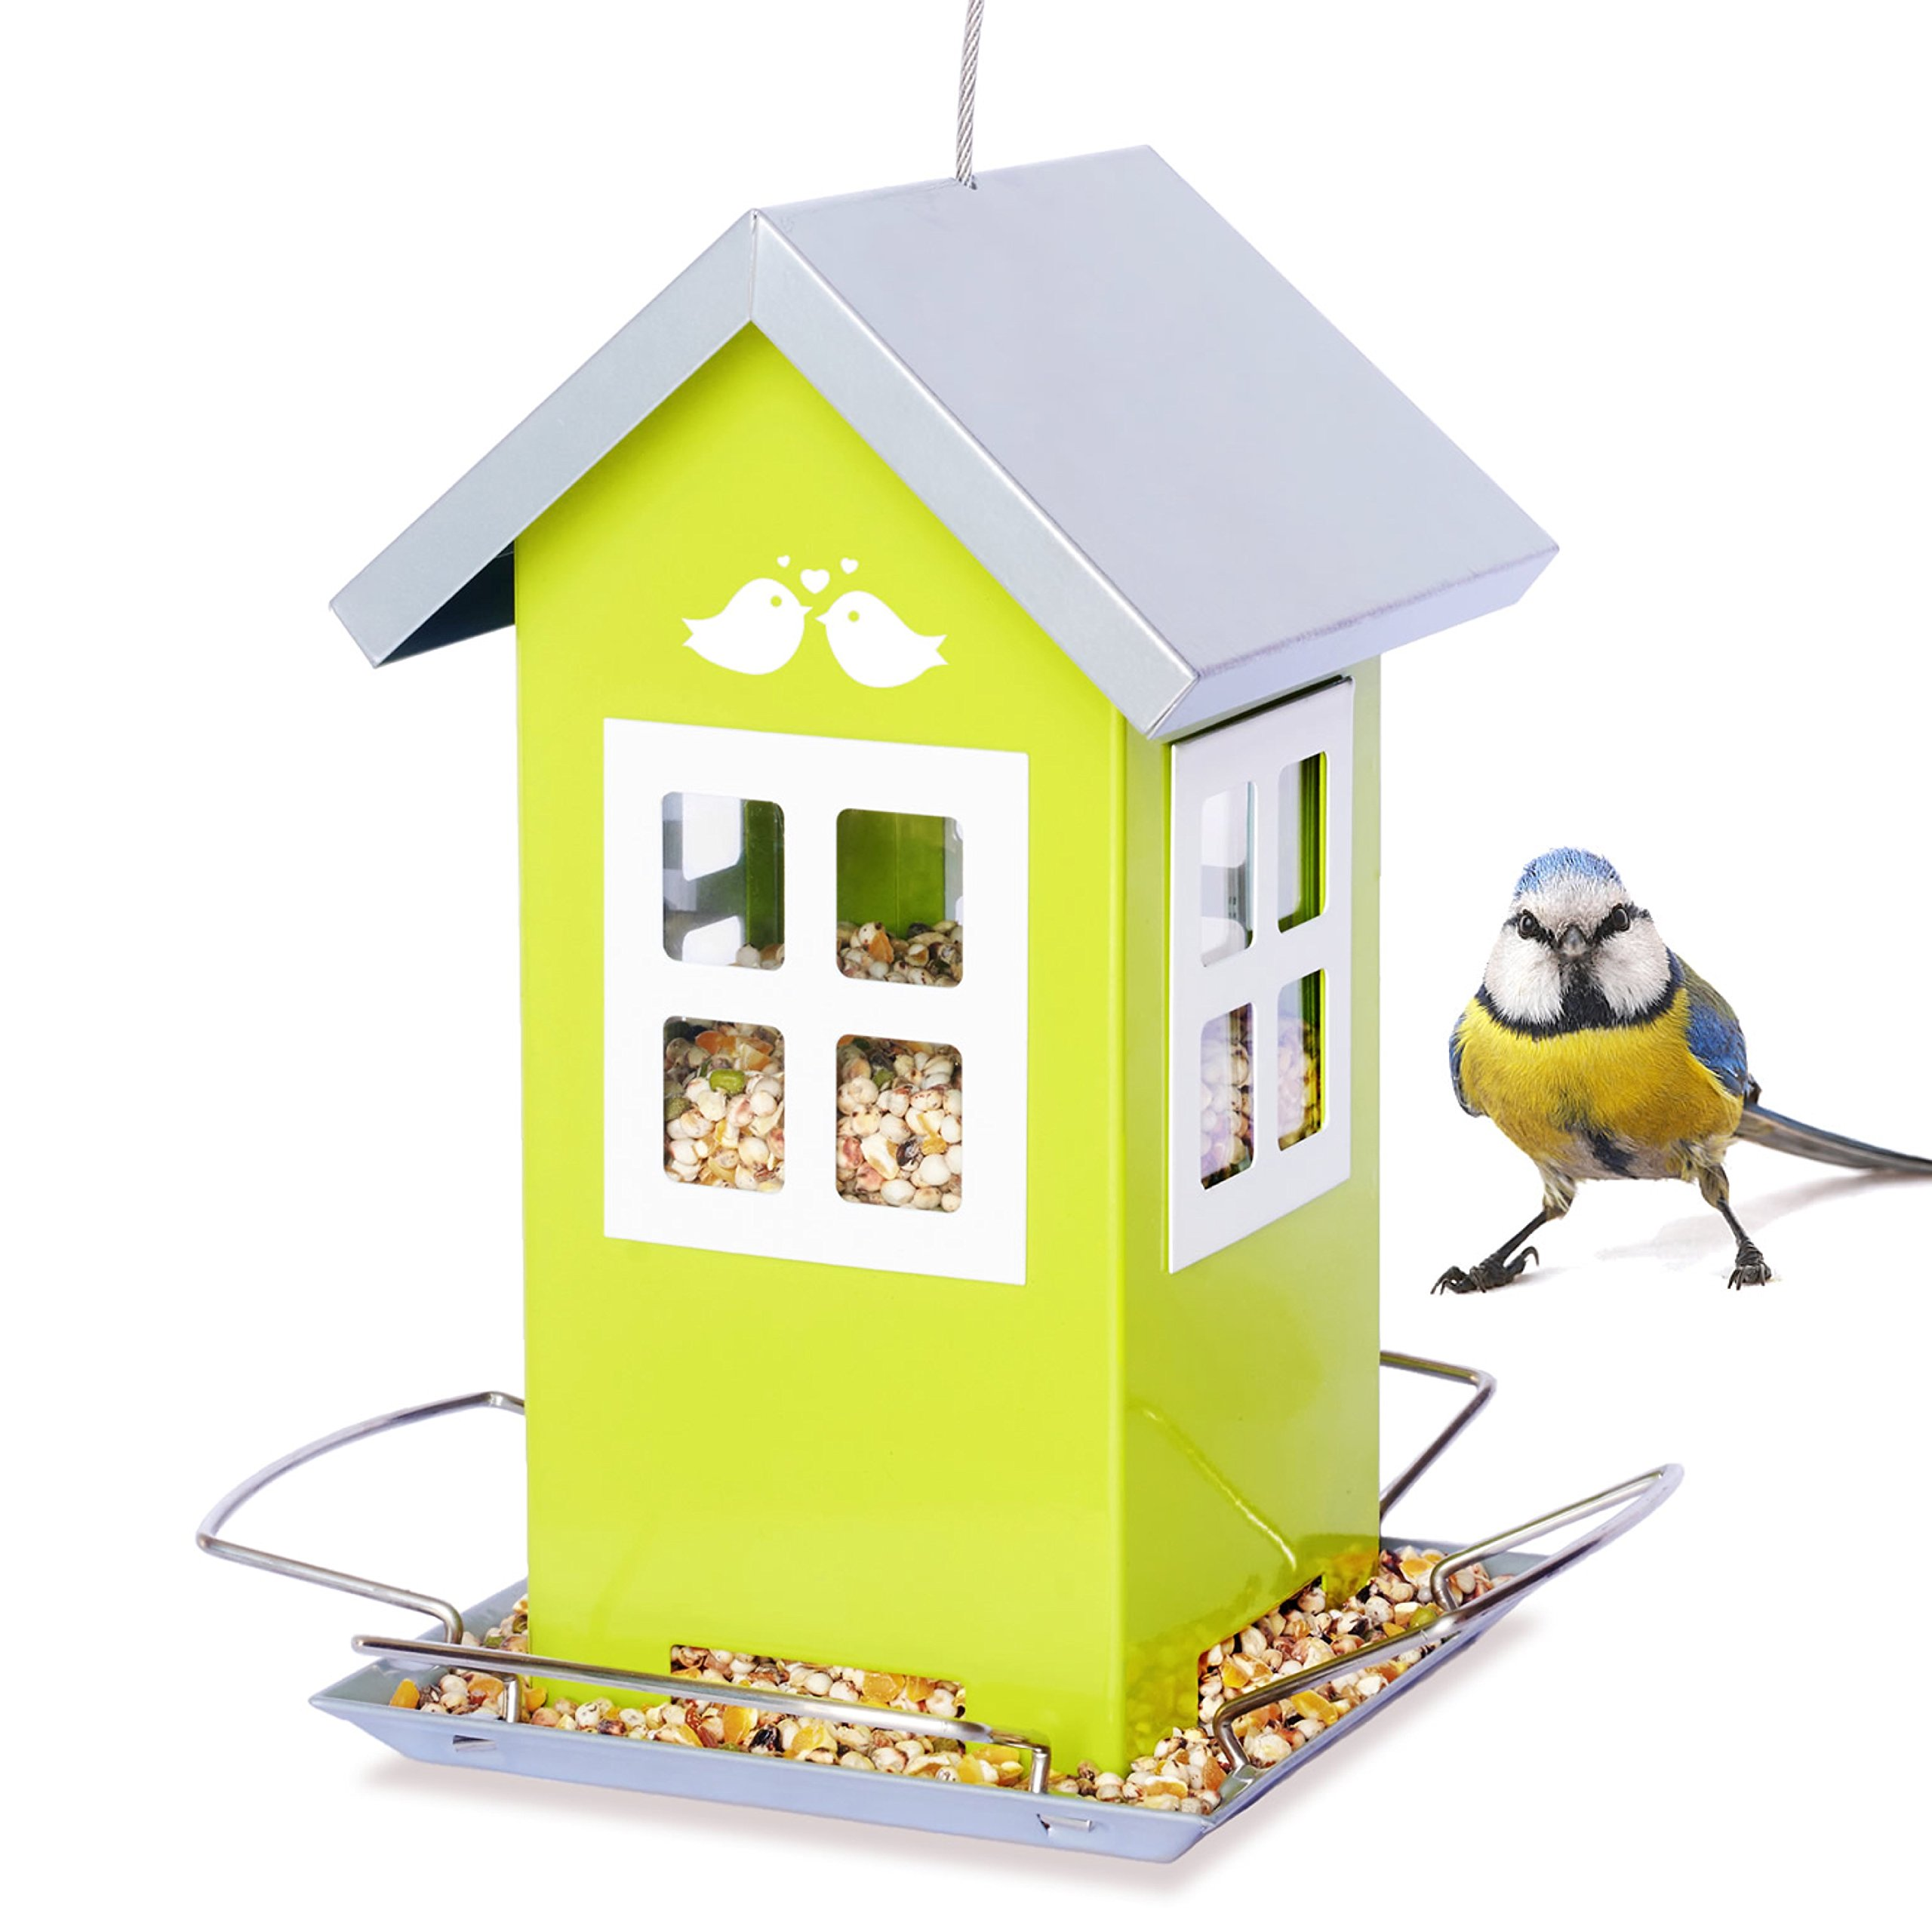 Bird Loveee Feeder House, Great Outdoor Garden Gift, Weatherproof Design, 4 Feeding Ports, Drains Rain Water to Keep Bird Seed Dry!